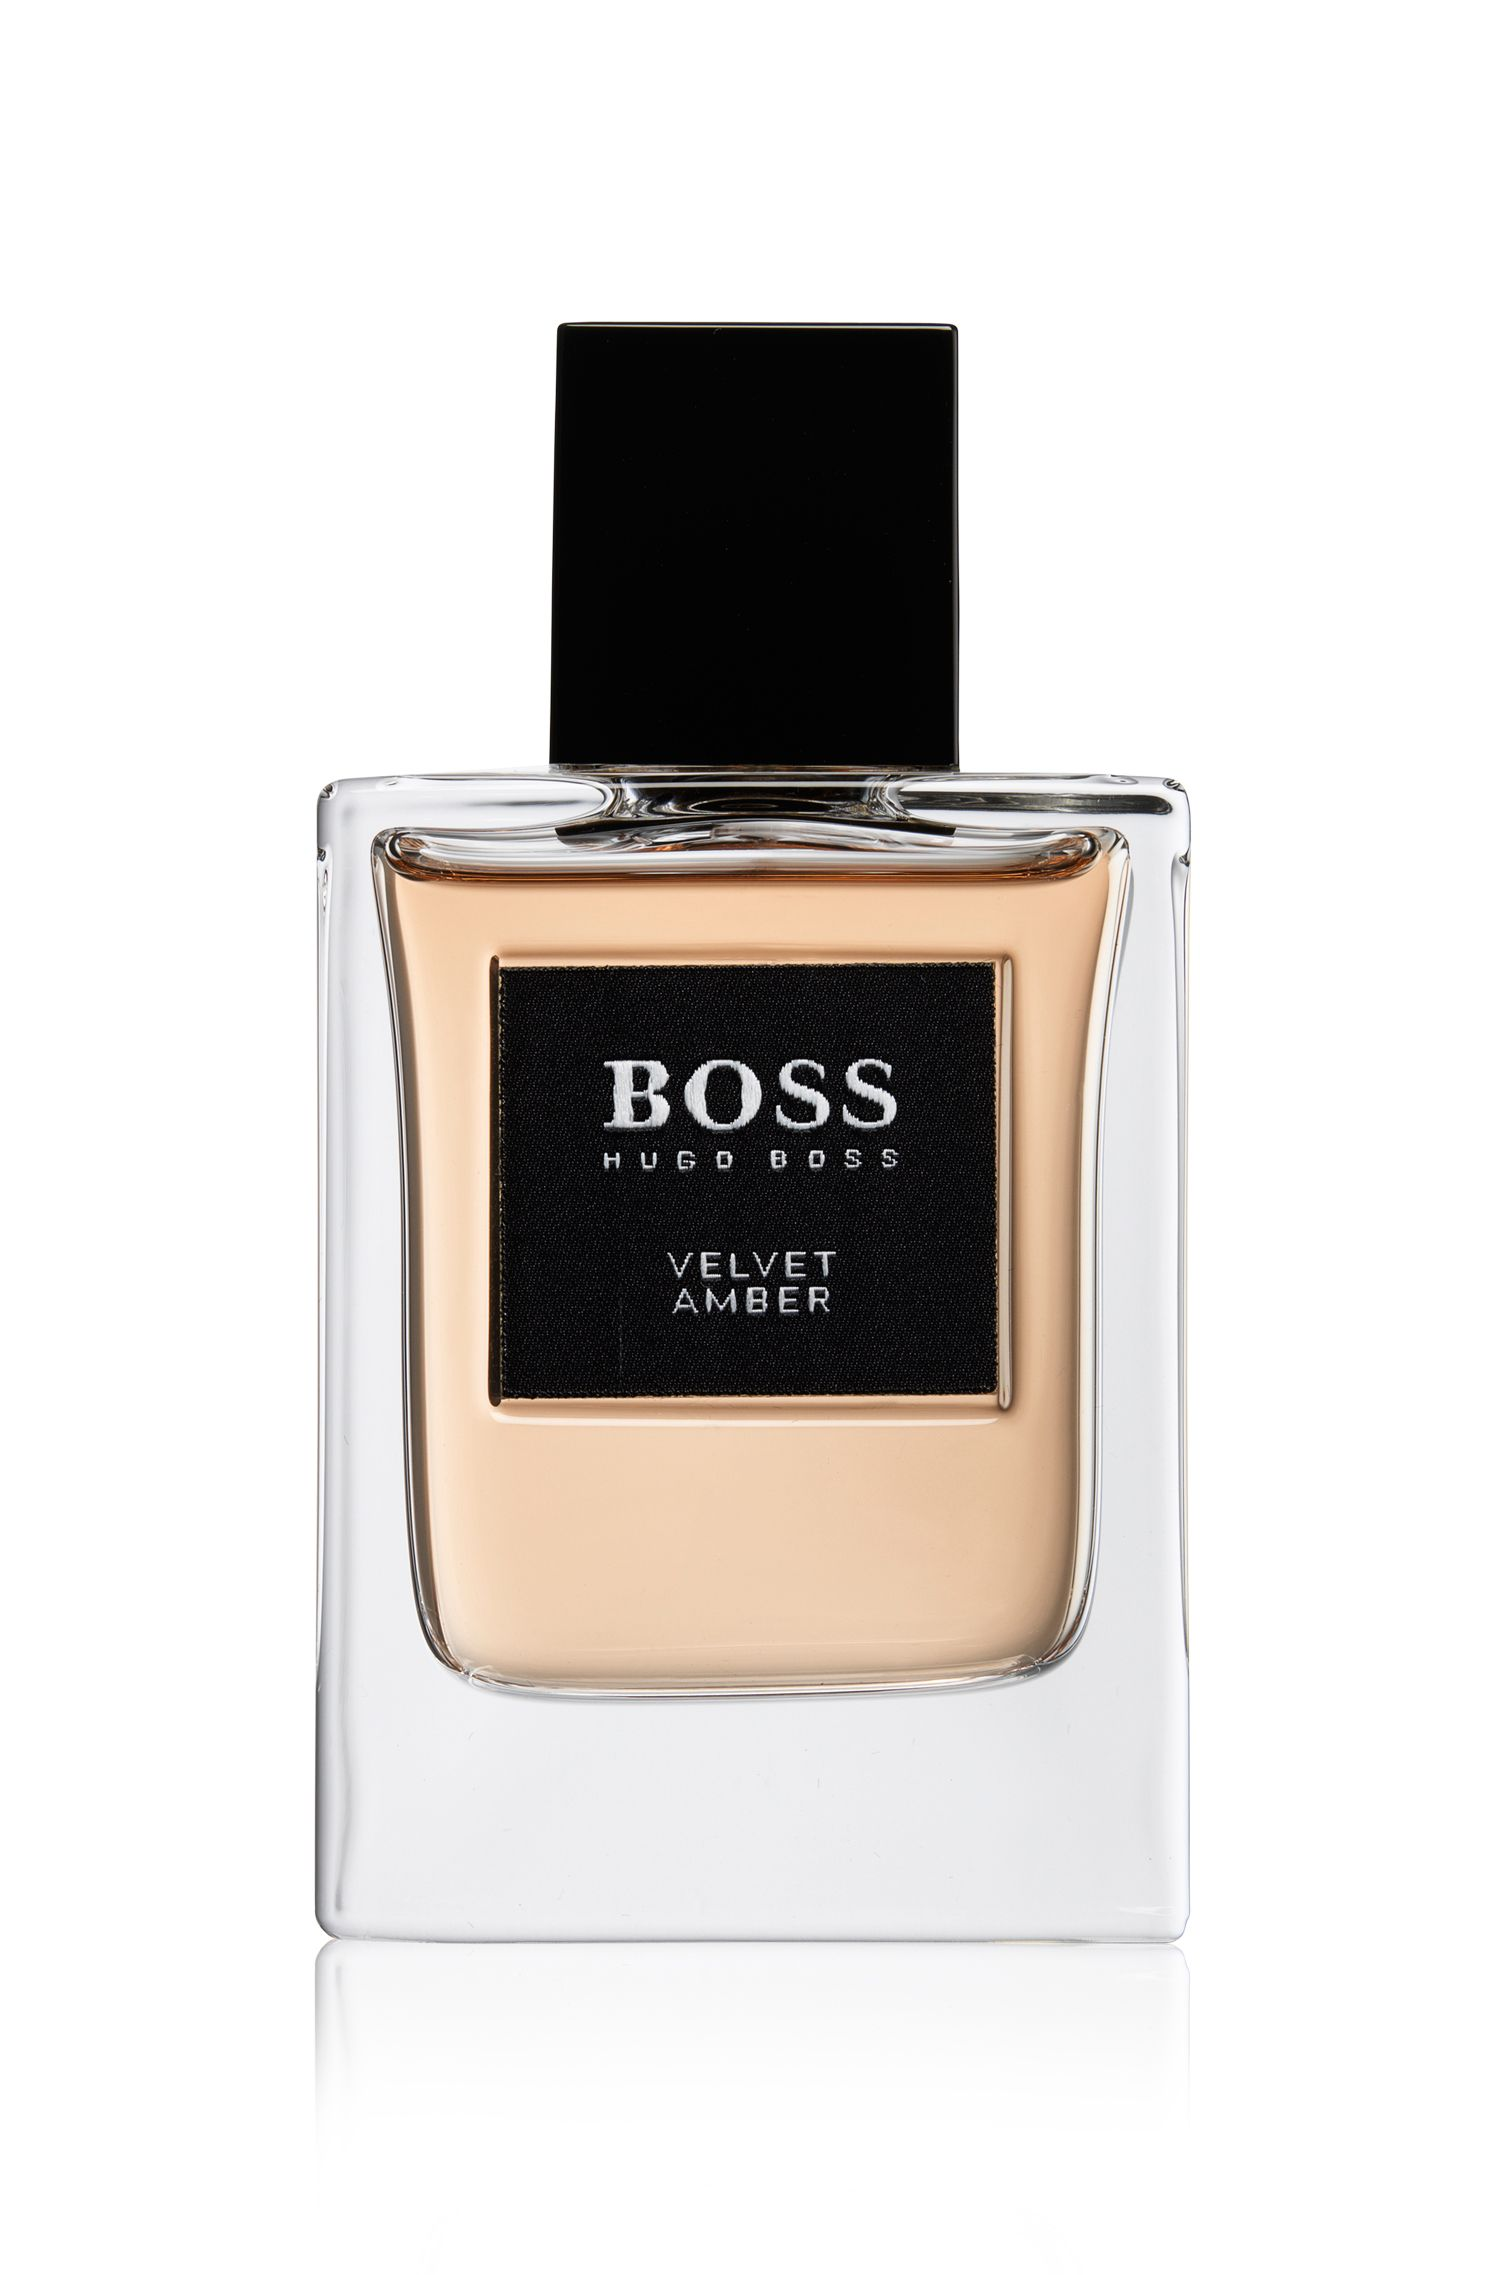 'BOSS The Collection' | 1.6 fl. oz. (50 mL) Velvet Amber Eau de Toilette,